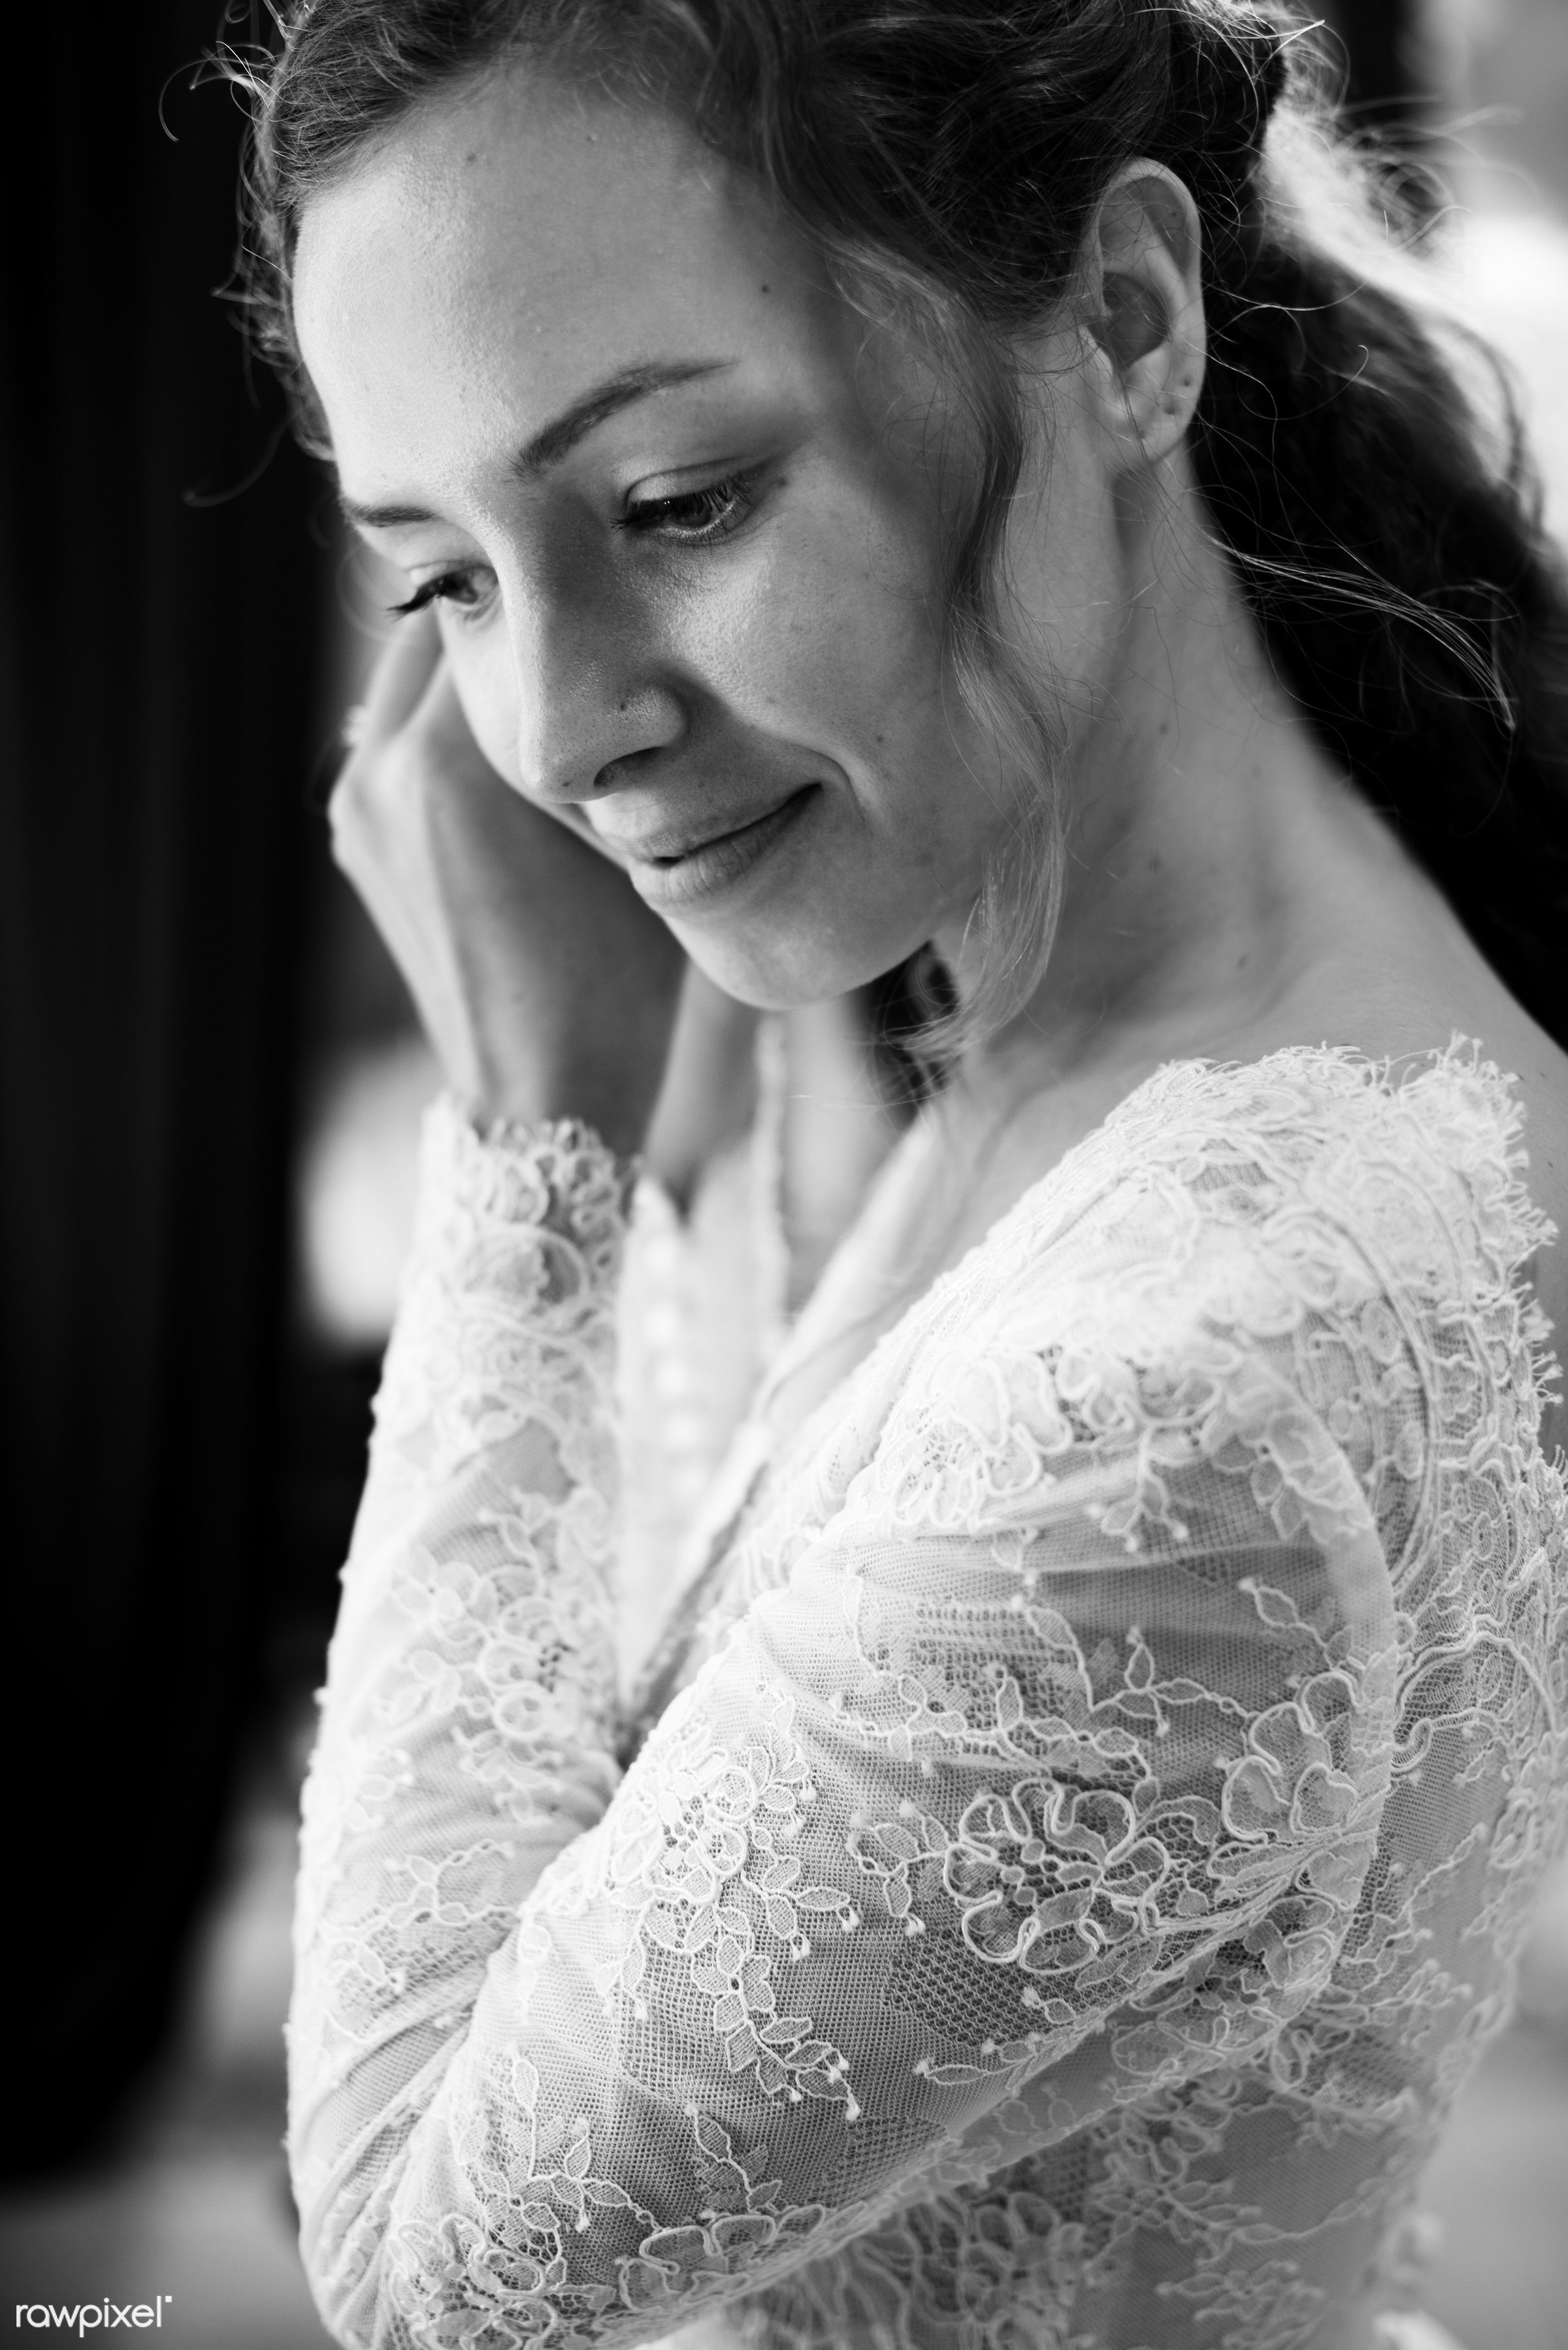 person, occasion, white dress, people, caucasian, glamour, love, gorgeous, happy, woman, attractive, feminine, gown, bride,...